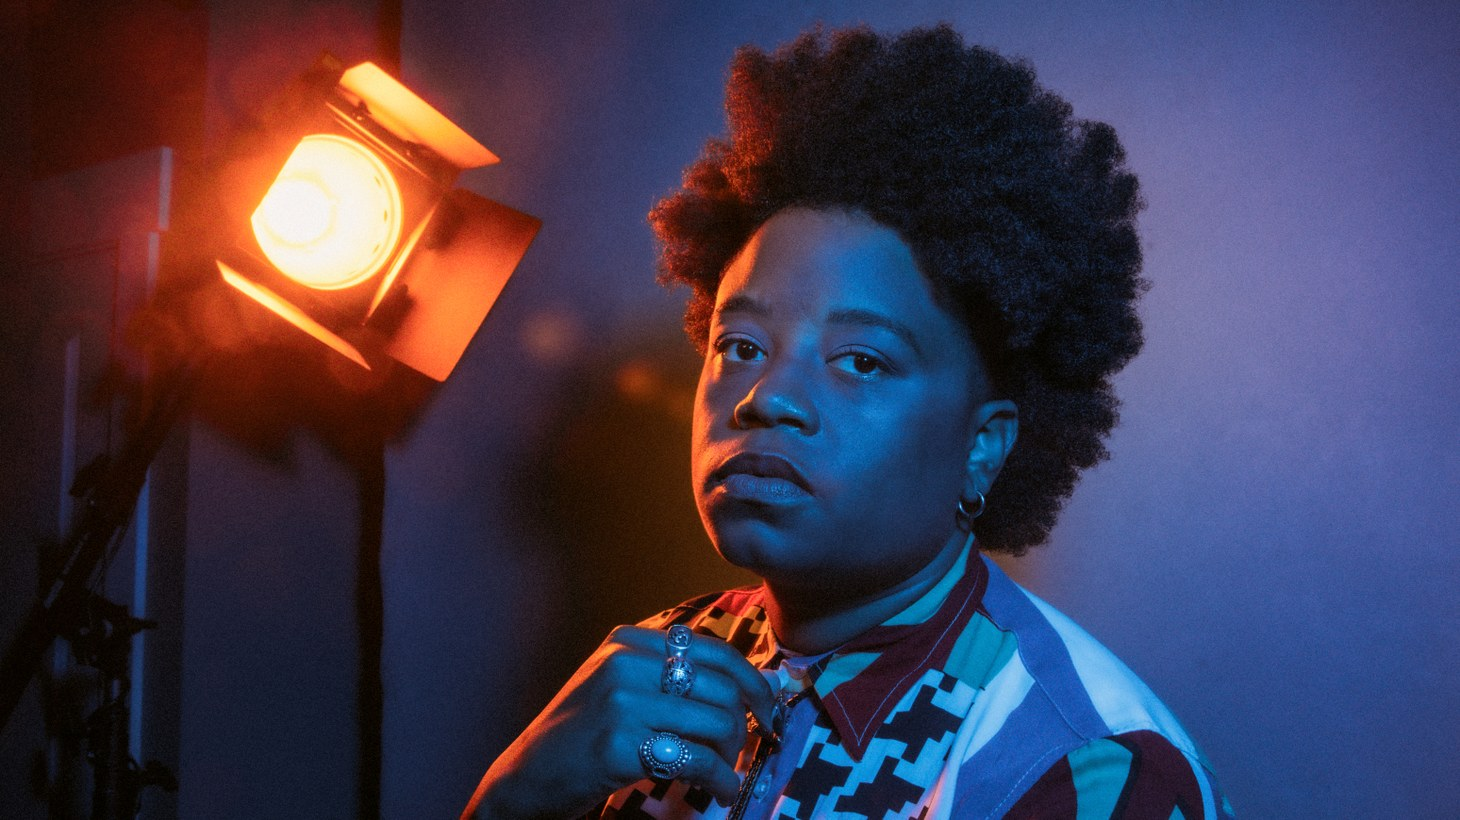 """Amythyst Kiah is tapped as an up-and-coming secret that we need to get to know better with a new version of Kiah's radically reimagined song """"Black Myself"""" a powerful track originally recorded for the band she was in, Our Native Daughters, which…"""